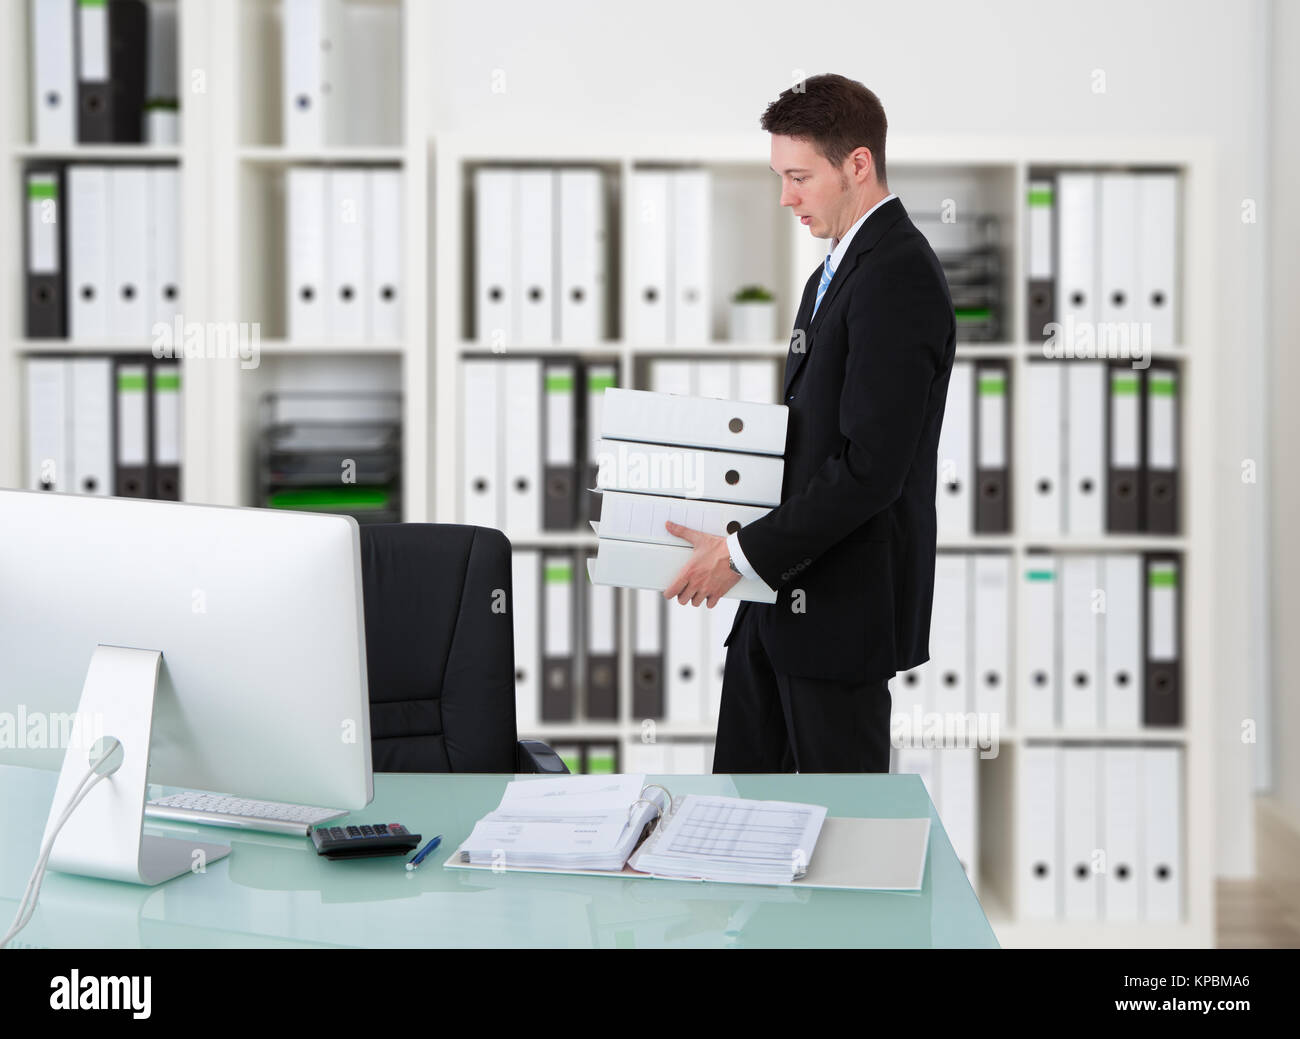 Businessman Carrying Binders By Desk - Stock Image